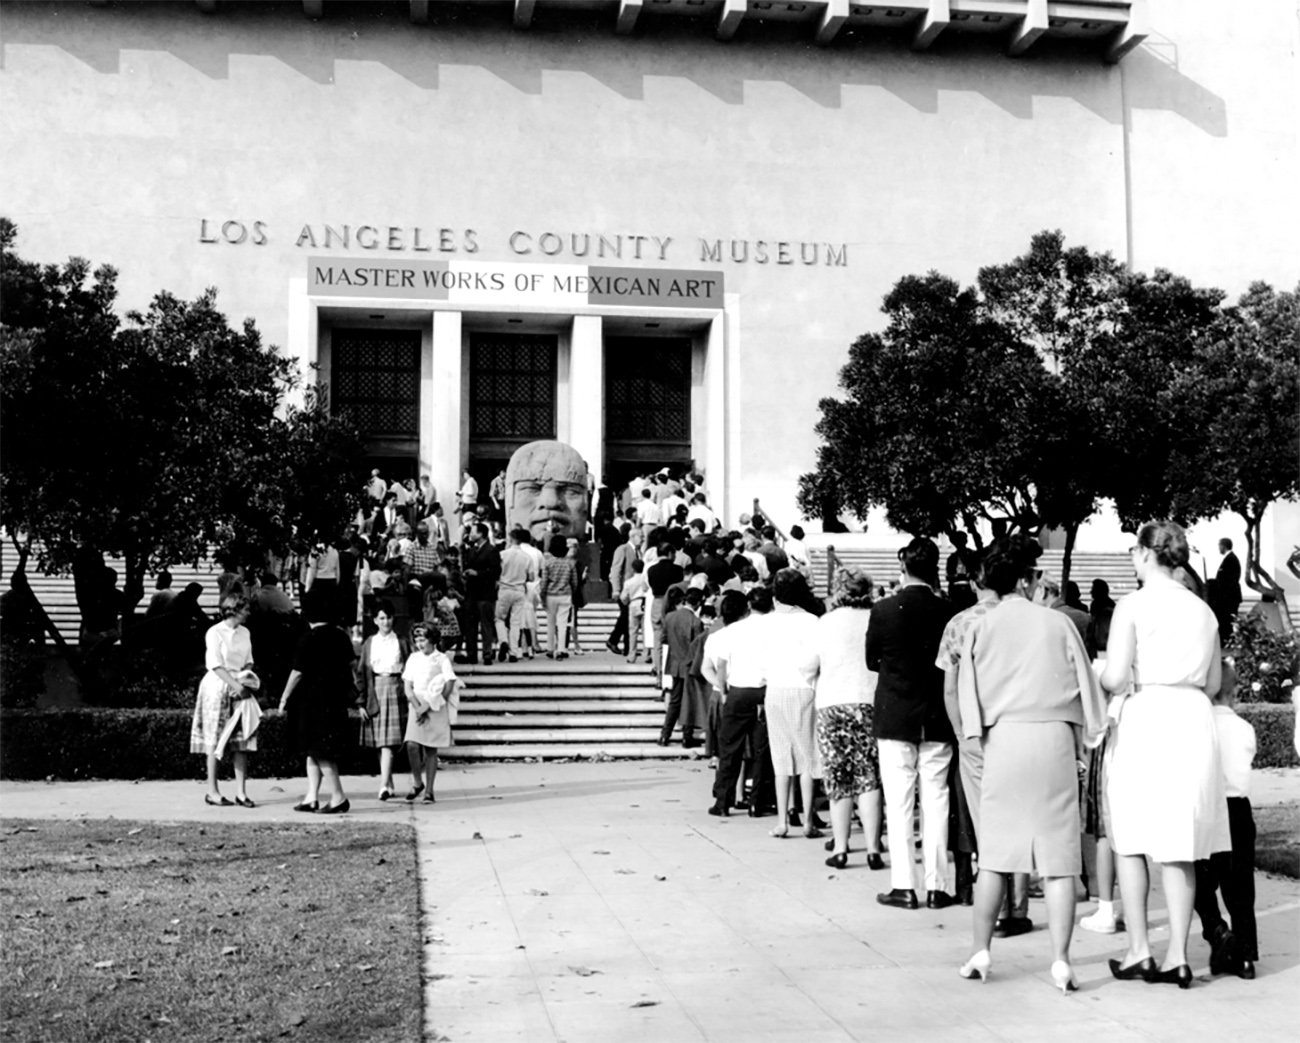 An older photo of many people lined up to visit the Los Angeles County Museum's exhibition titled Masterworks of Mexican Art. The line goes up a small staircase and there is a large stone Olmec head on top of the stairs.